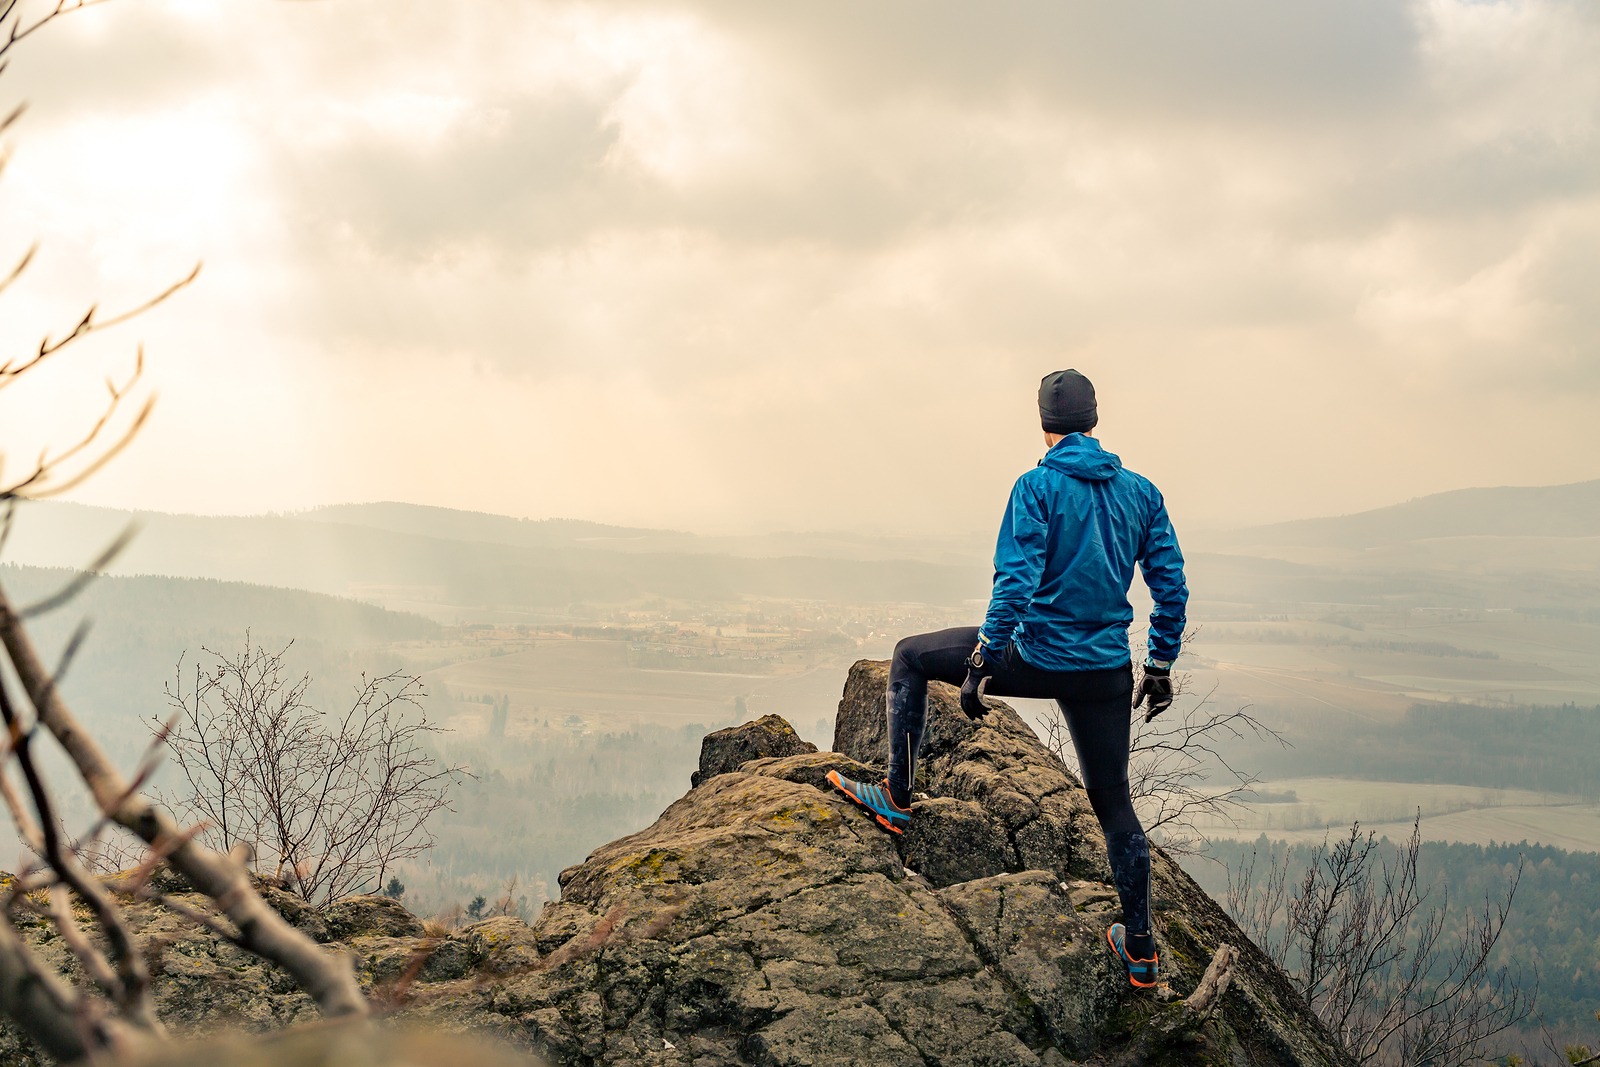 Man poses on summit of a large rock formation. He is feeling full of energy thanks to performance counseling in Phoenix, AZ. Ataraxis Counseling offers counseling for dads, performance counseling, relationship counseling for men, and more.